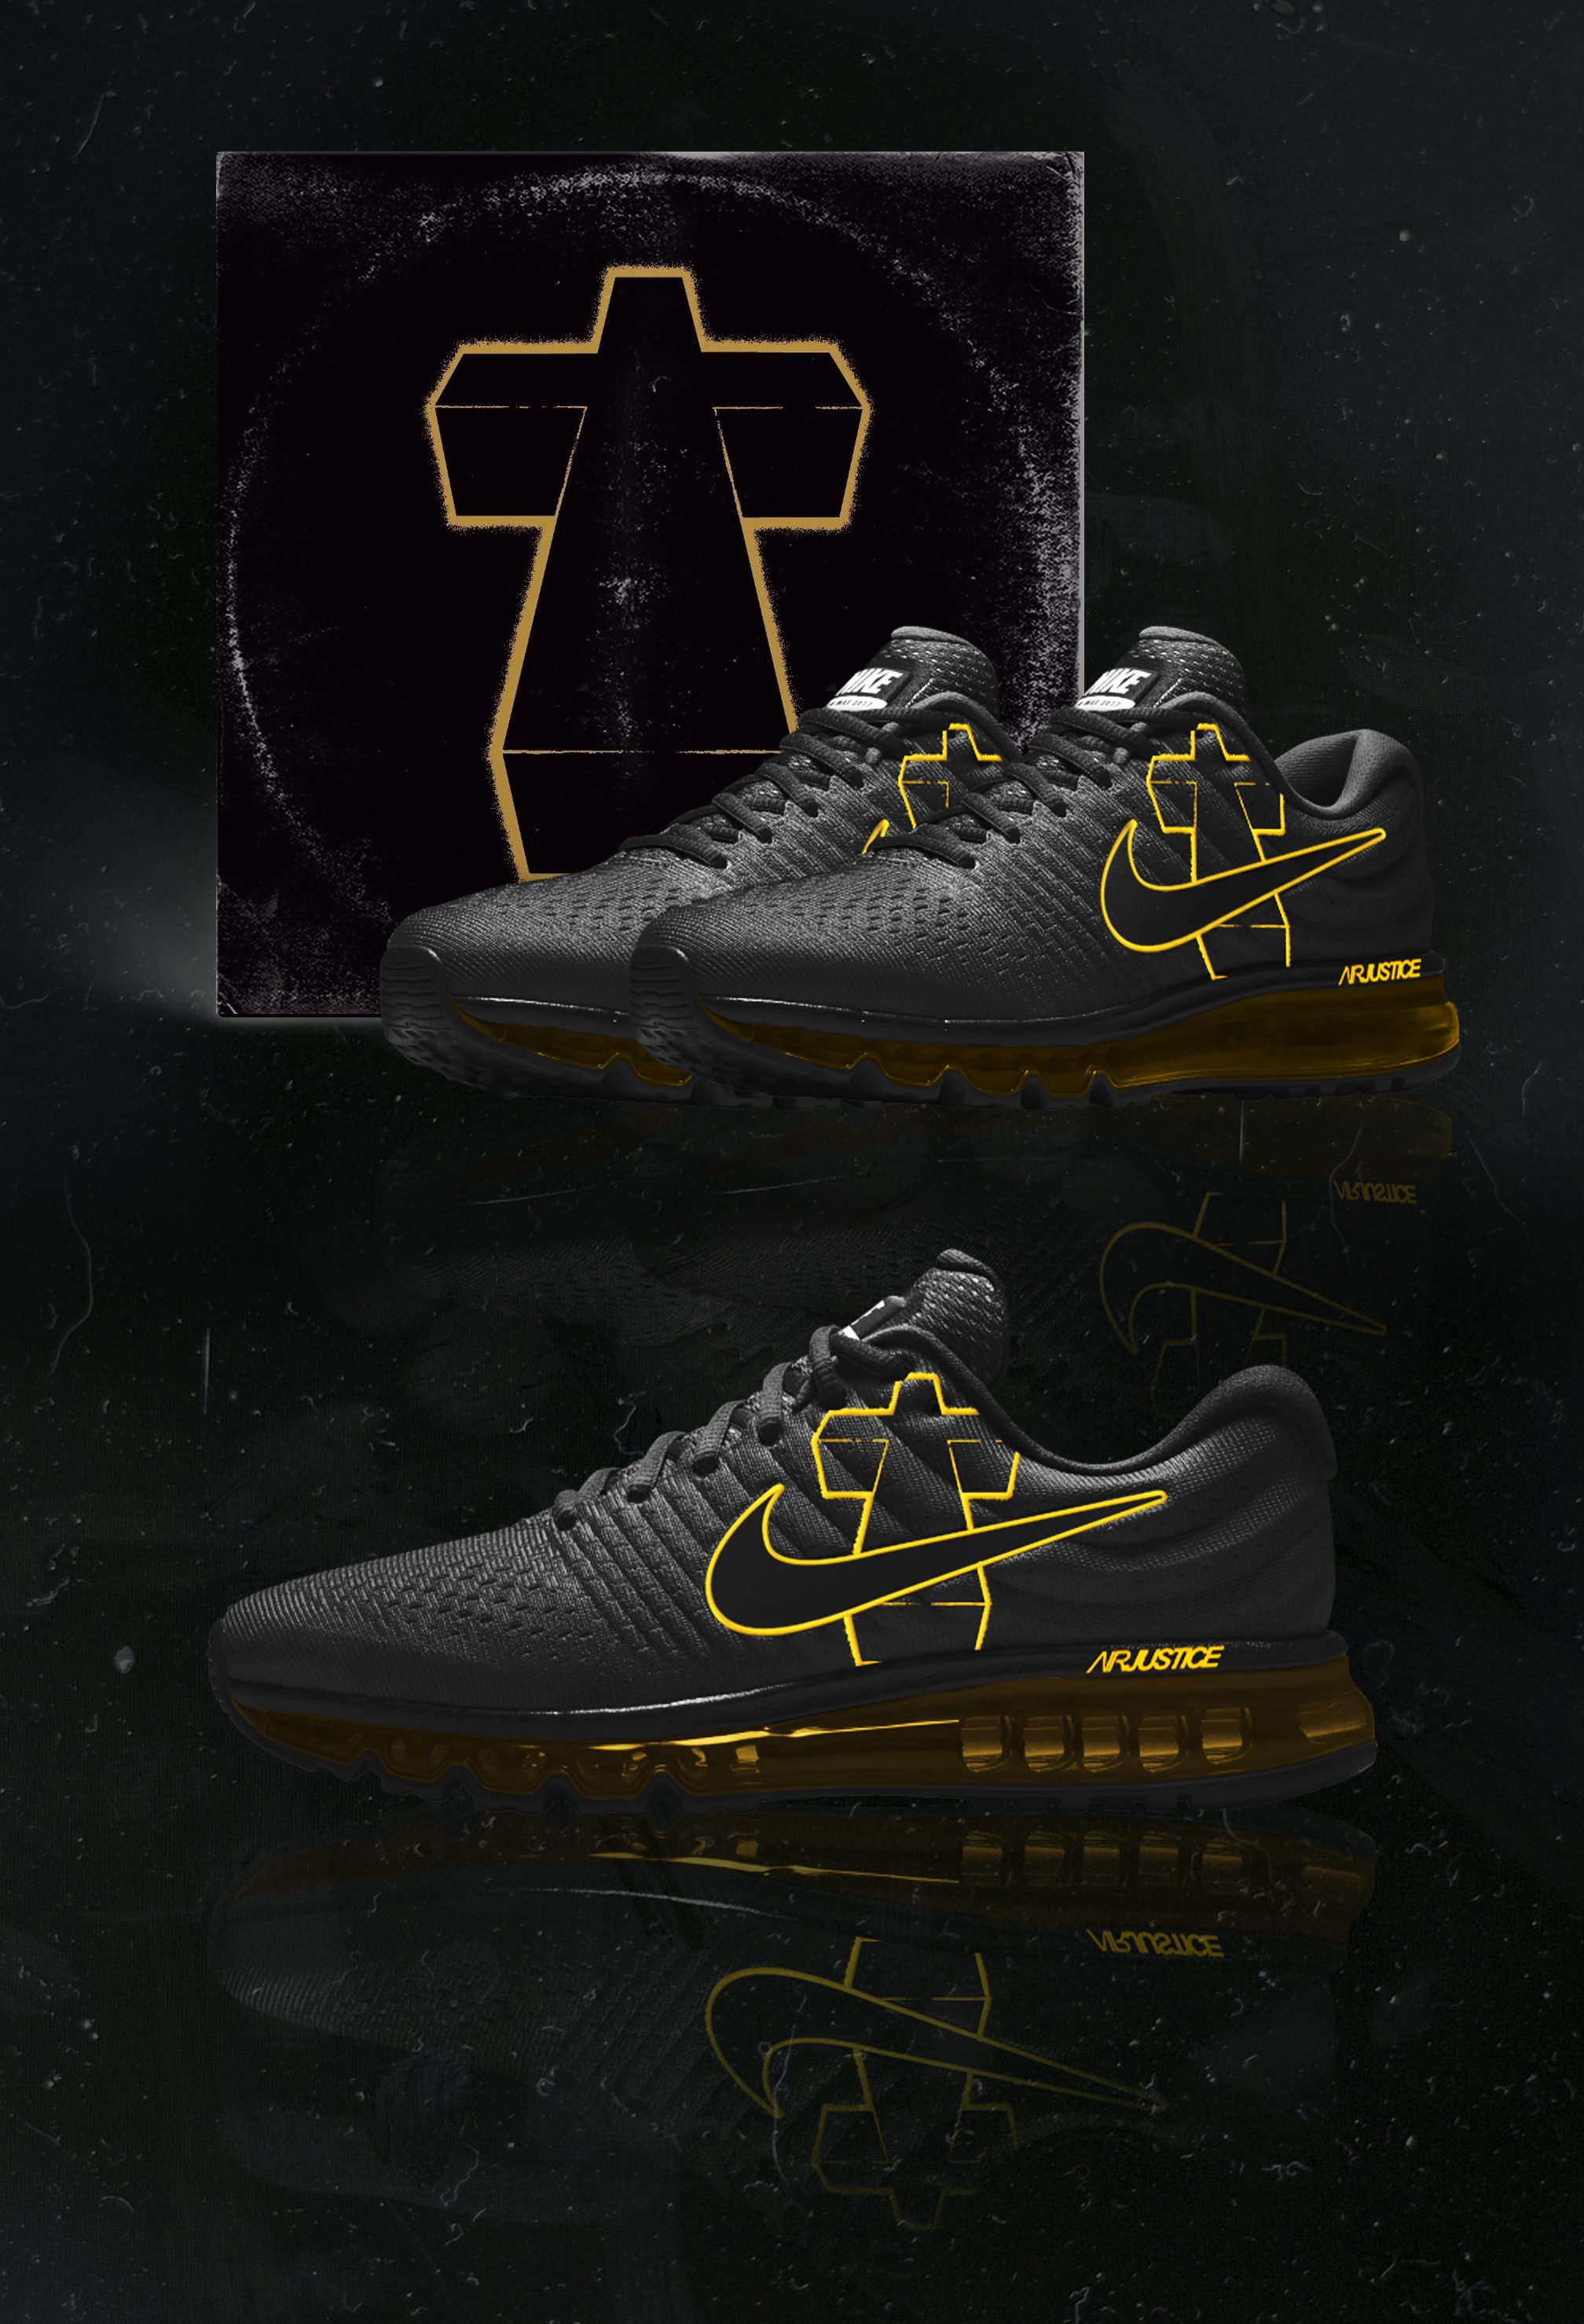 We turned your favourite album covers into Nike sneakers